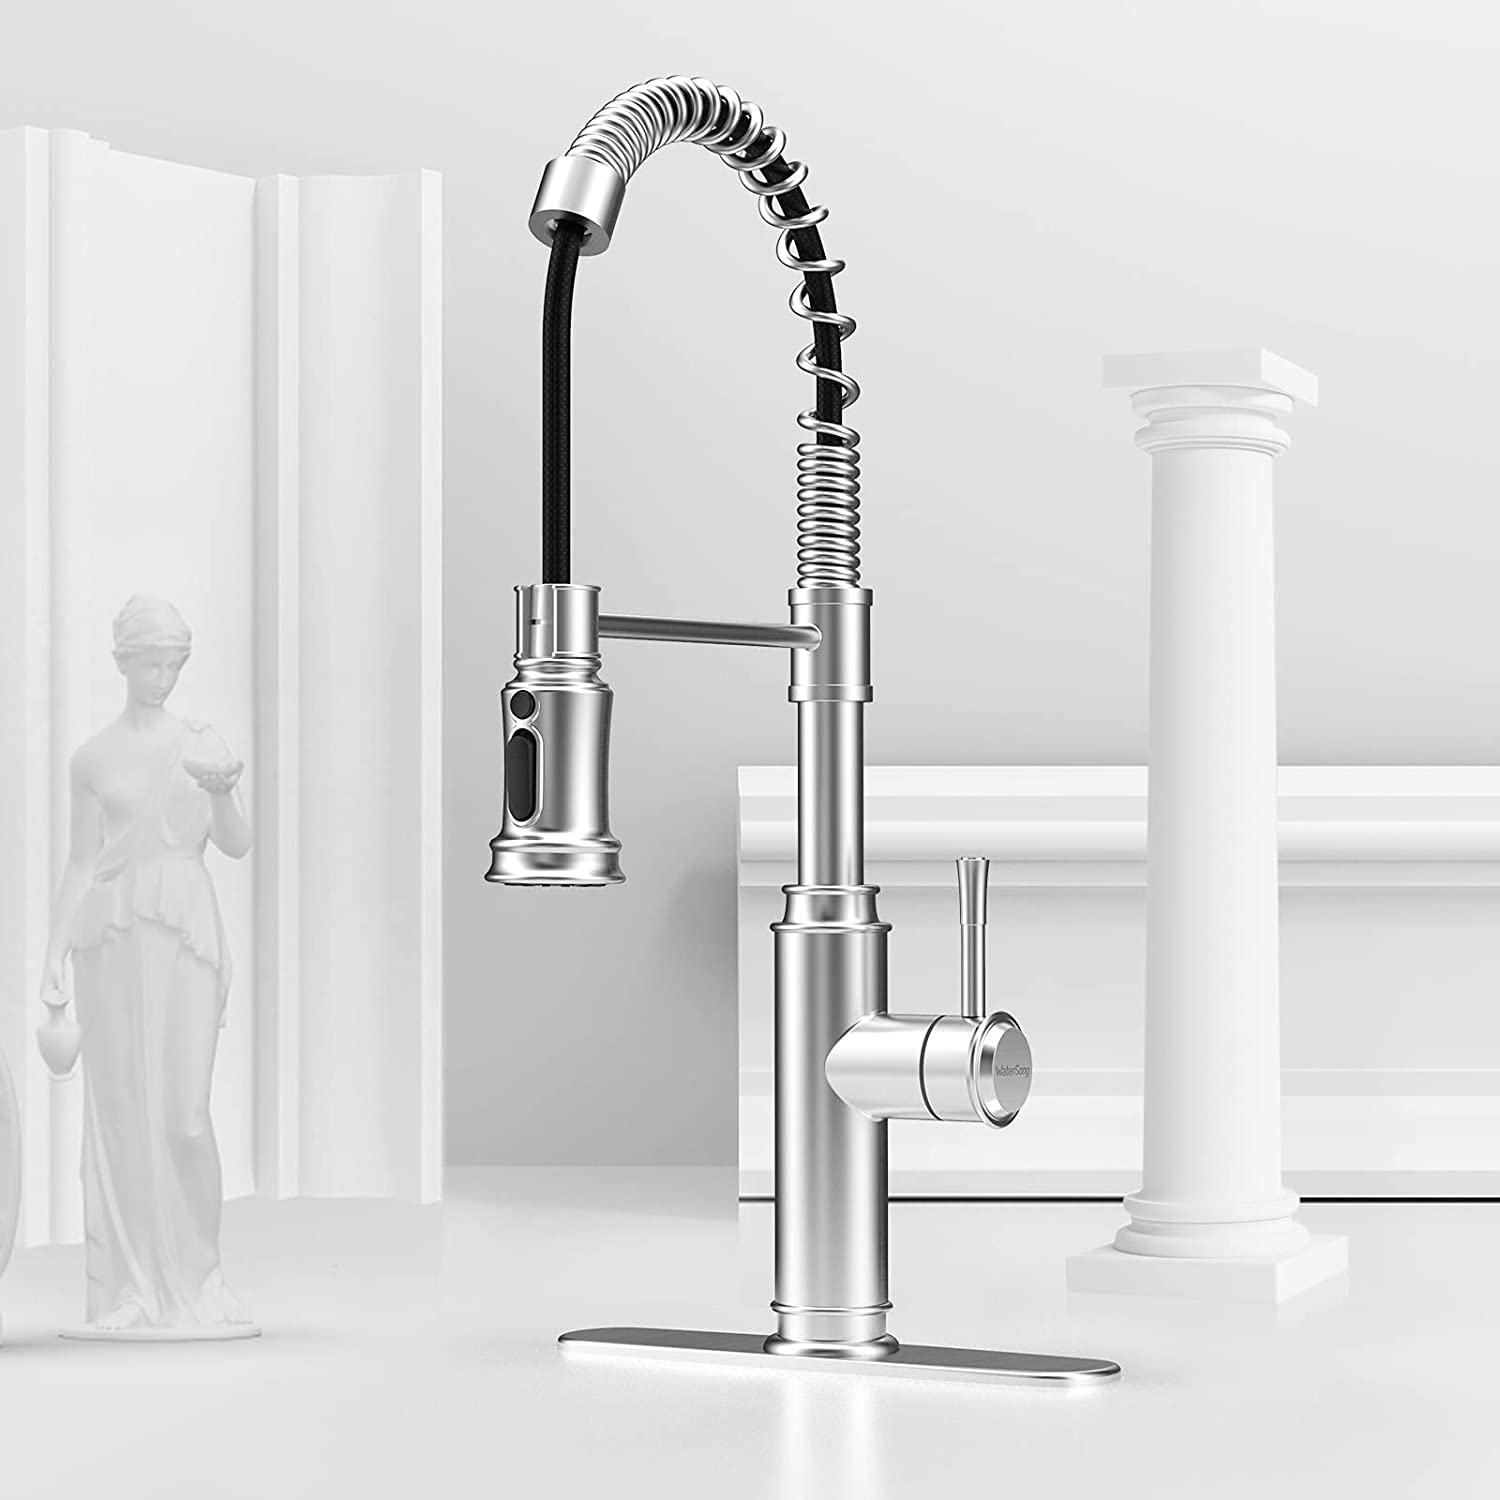 WaterSong Stainless Steel Spring Pull-Down Kitchen Faucet $39.99 Coupon